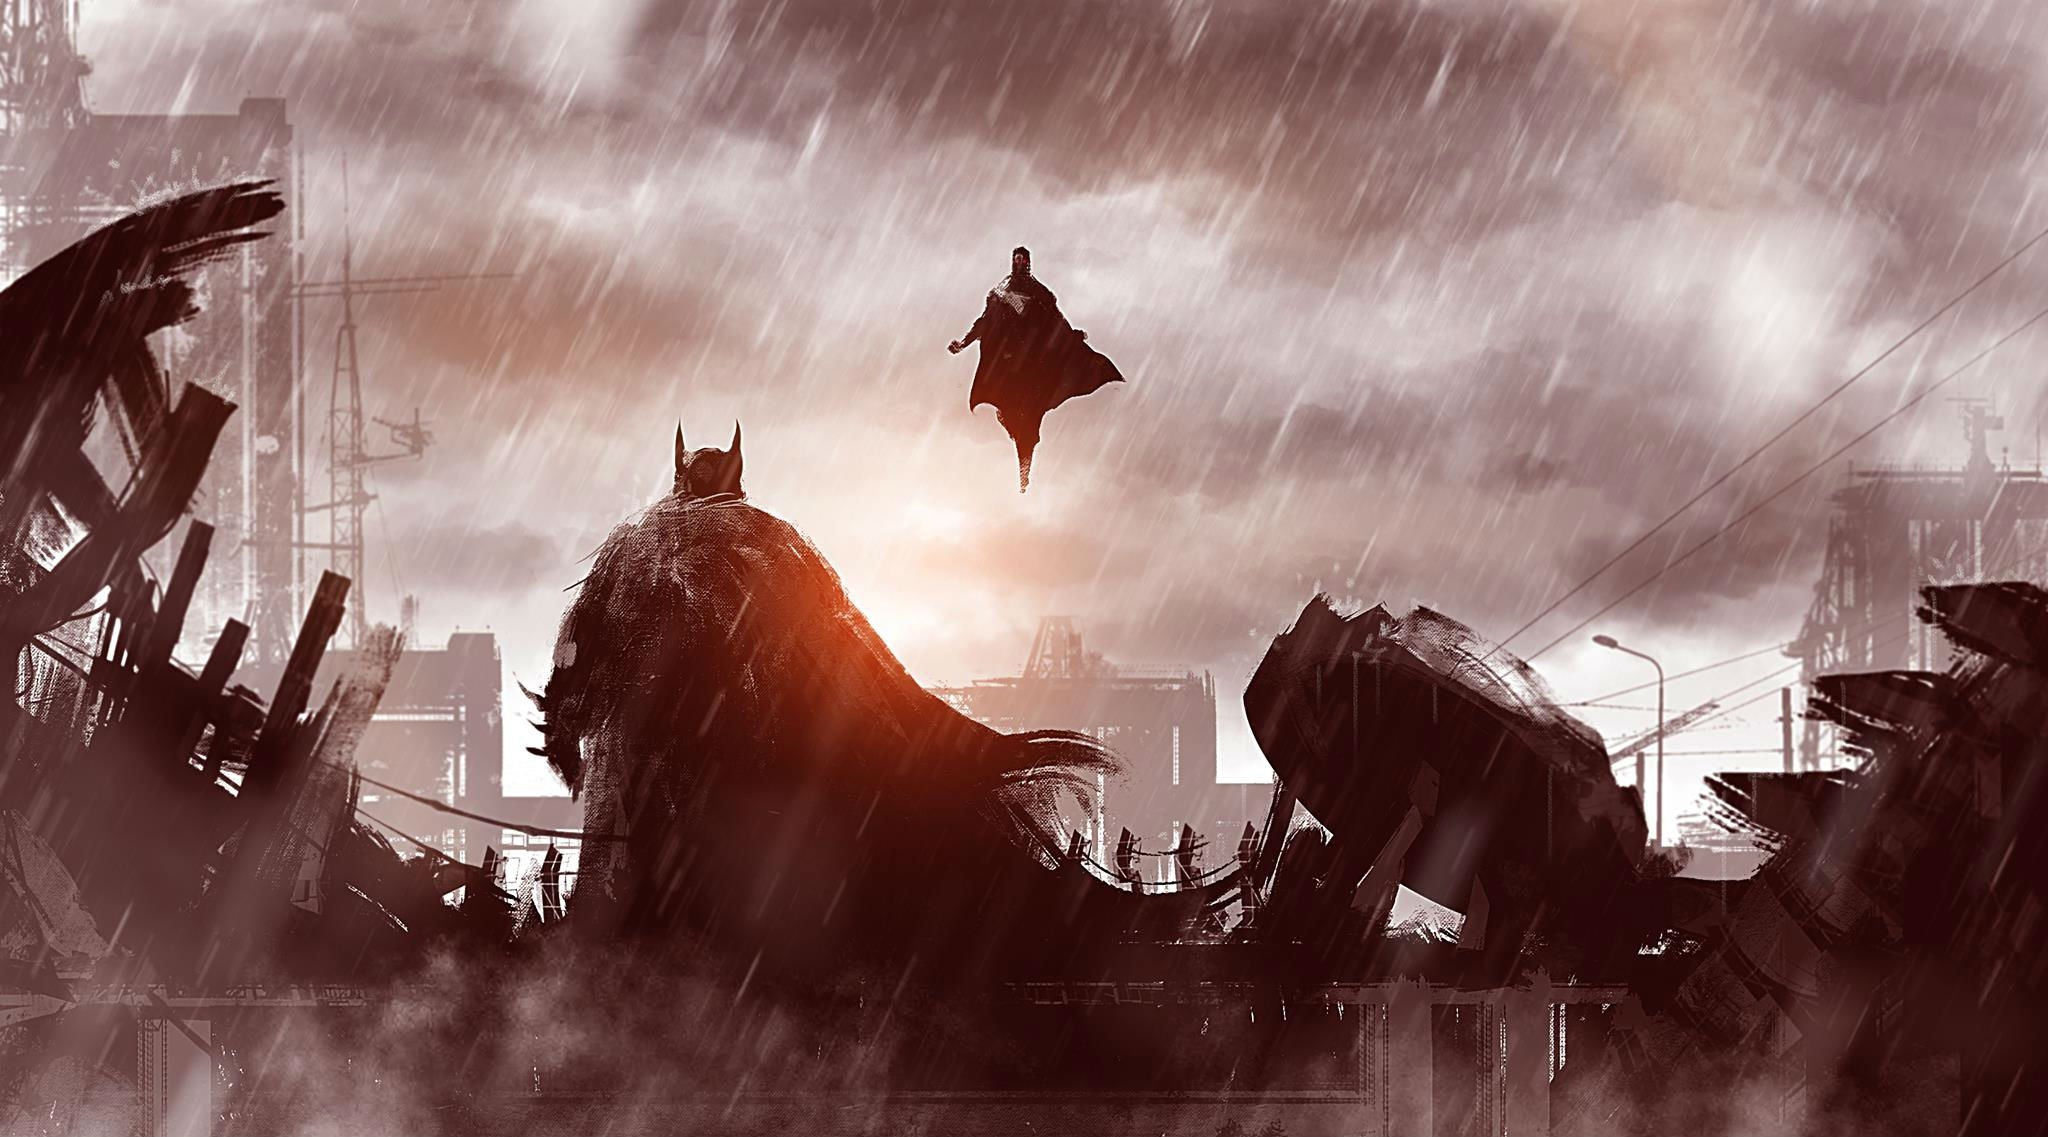 Clipart vs superman clipart library library Batman vs superman desktop clipart - ClipartFox clipart library library